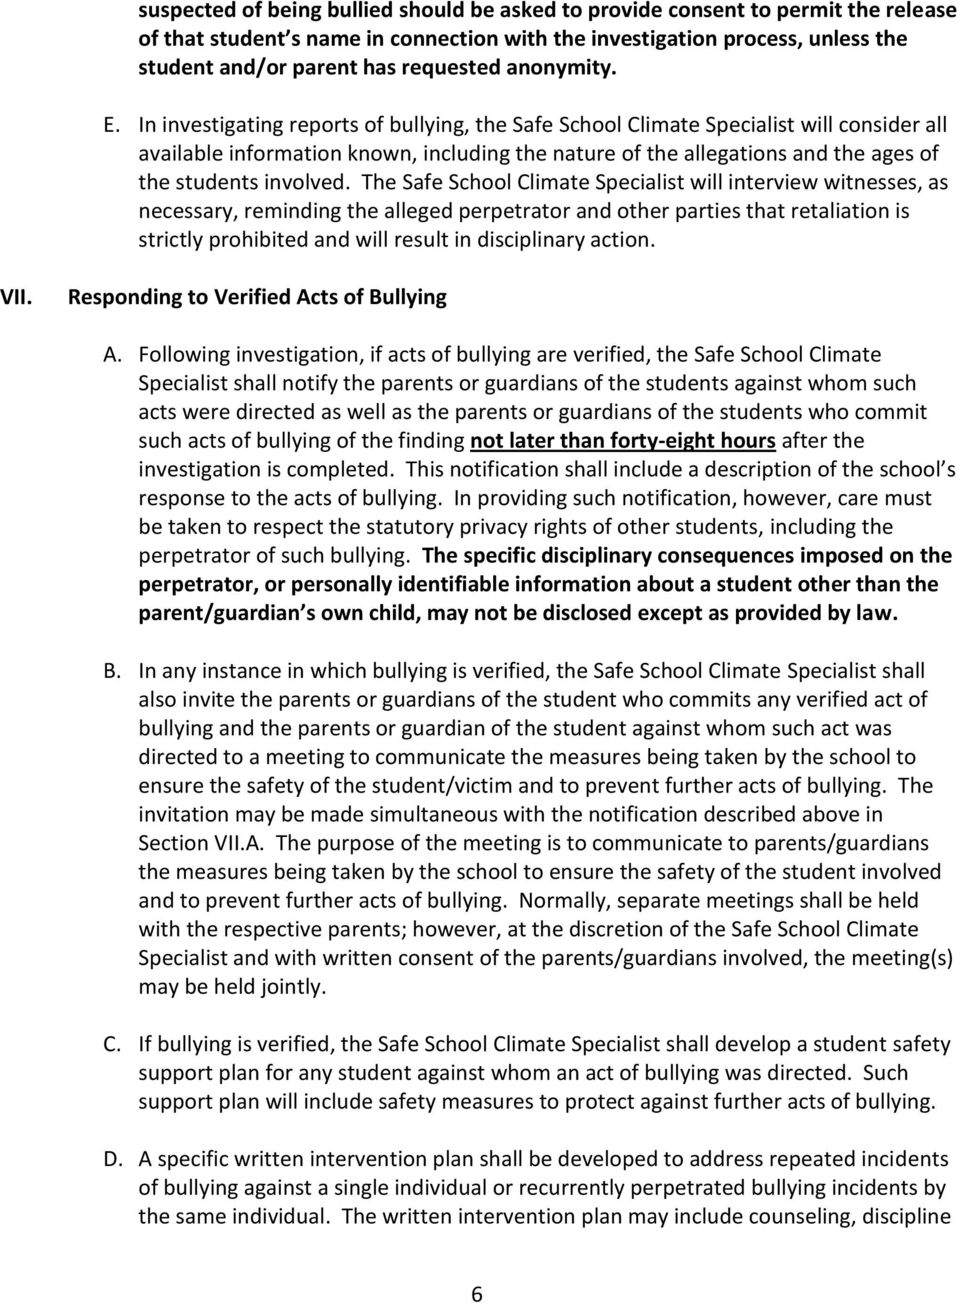 In investigating reports of bullying, the Safe School Climate Specialist will consider all available information known, including the nature of the allegations and the ages of the students involved.